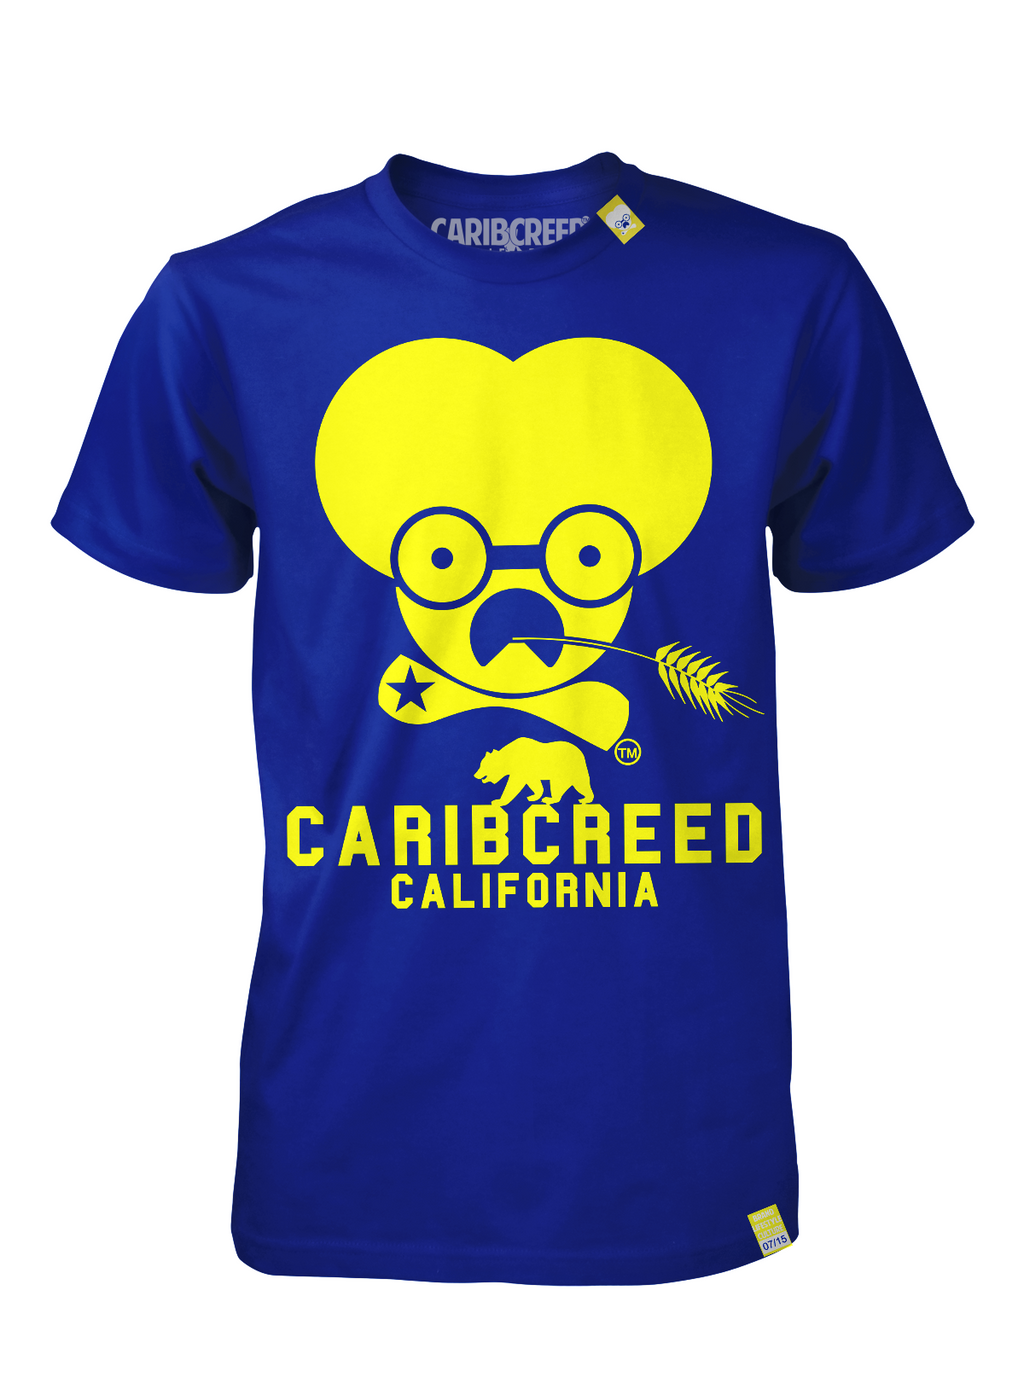 Original Classic | OREGON - CaribCreed (California) Clothing